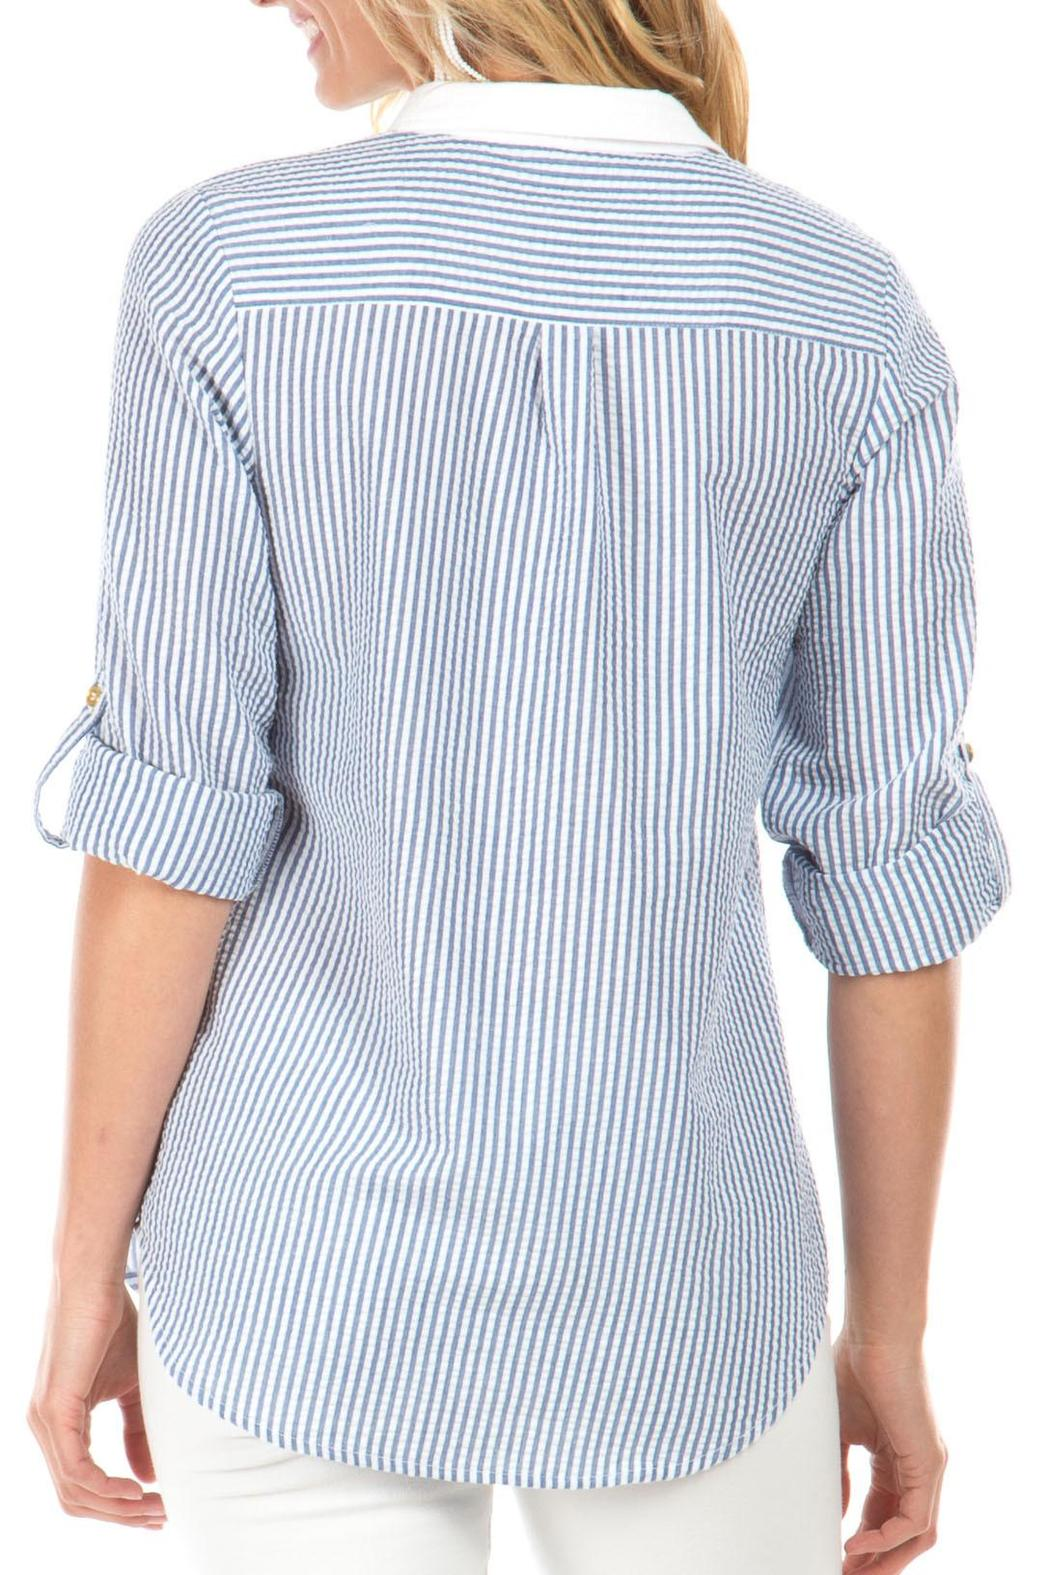 Duffield Lane The Pointe Tunic - Front Full Image